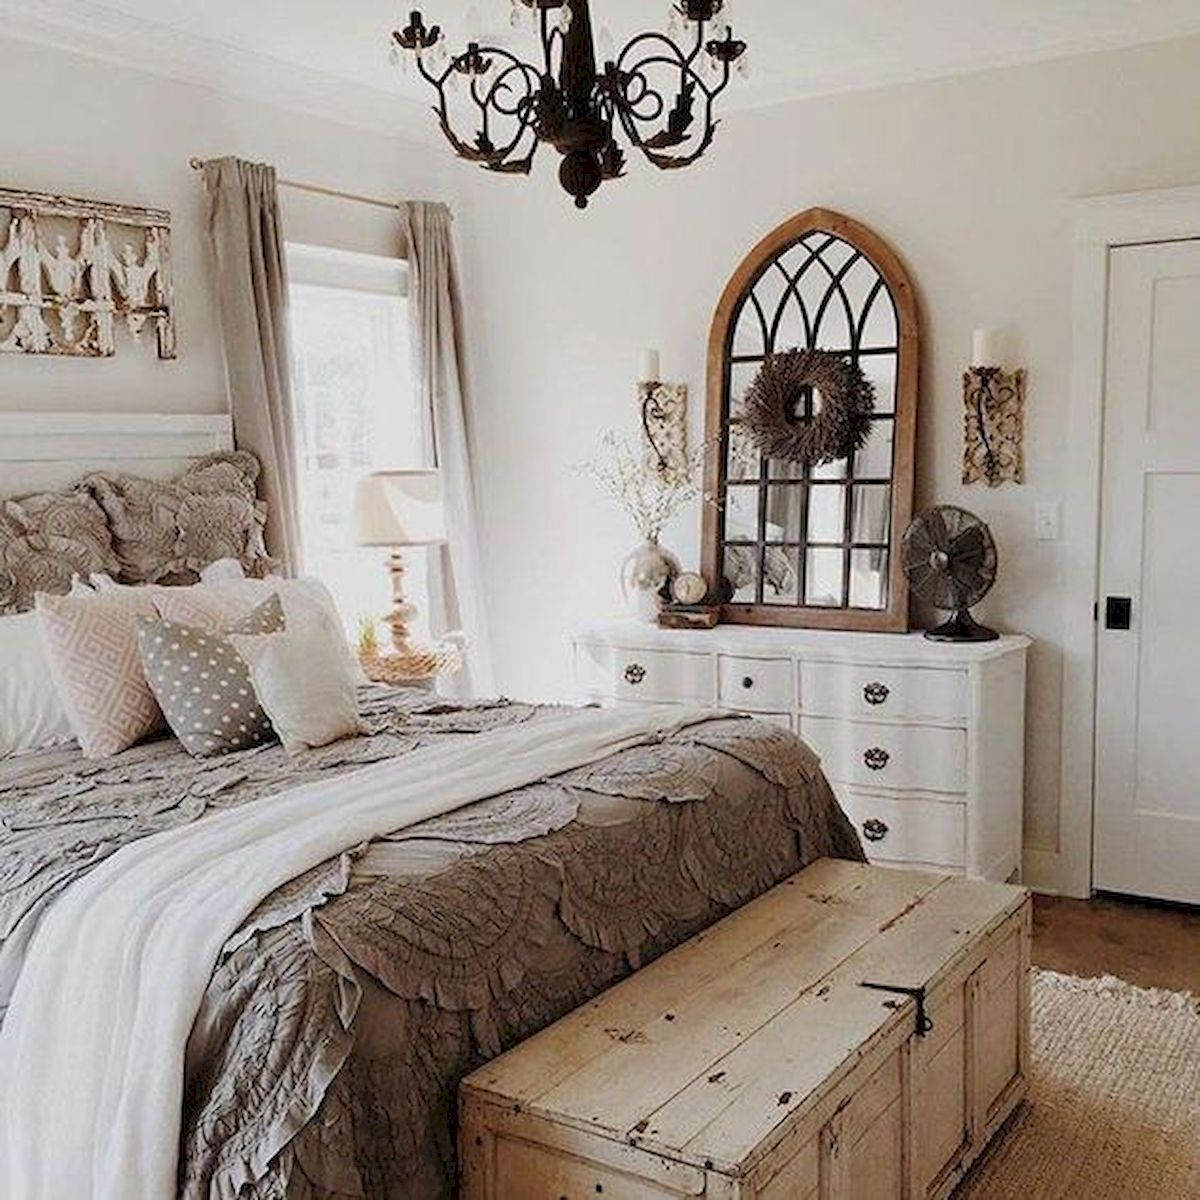 50 Awesome Farmhouse Bedroom Decor Ideas And Remodel ...